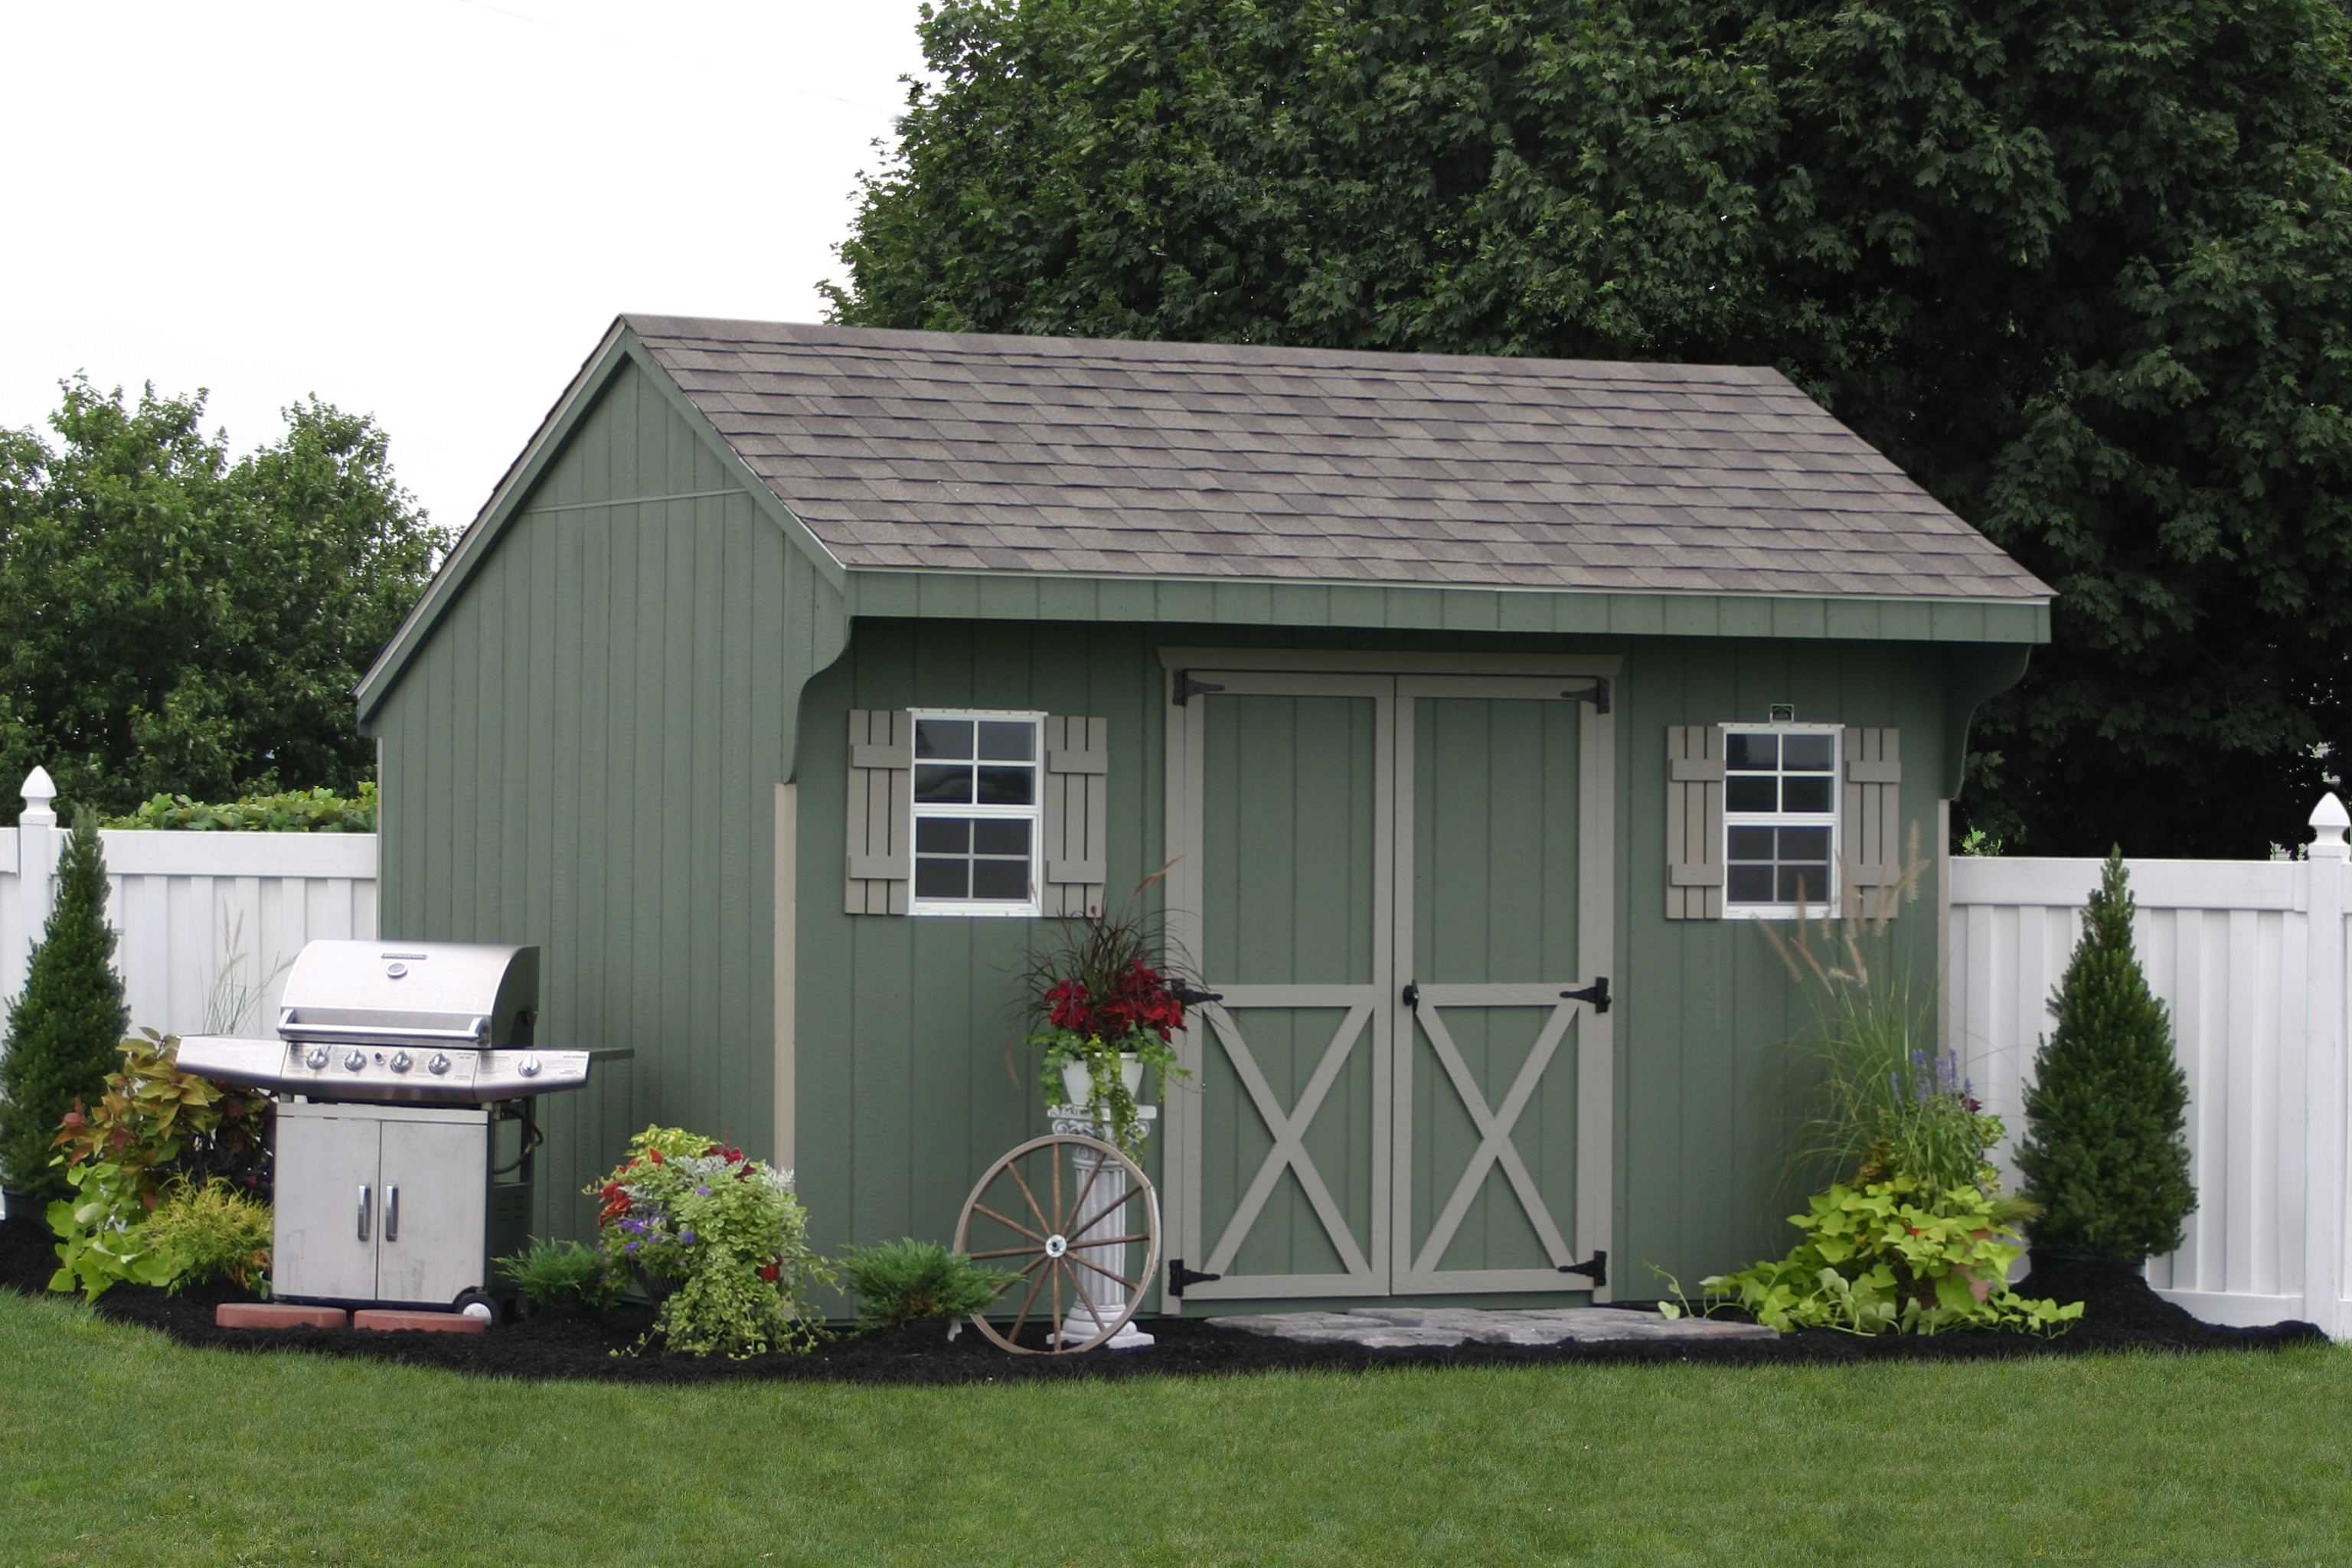 Shed blueprints the easy way to construct your own shed Outbuildings and sheds